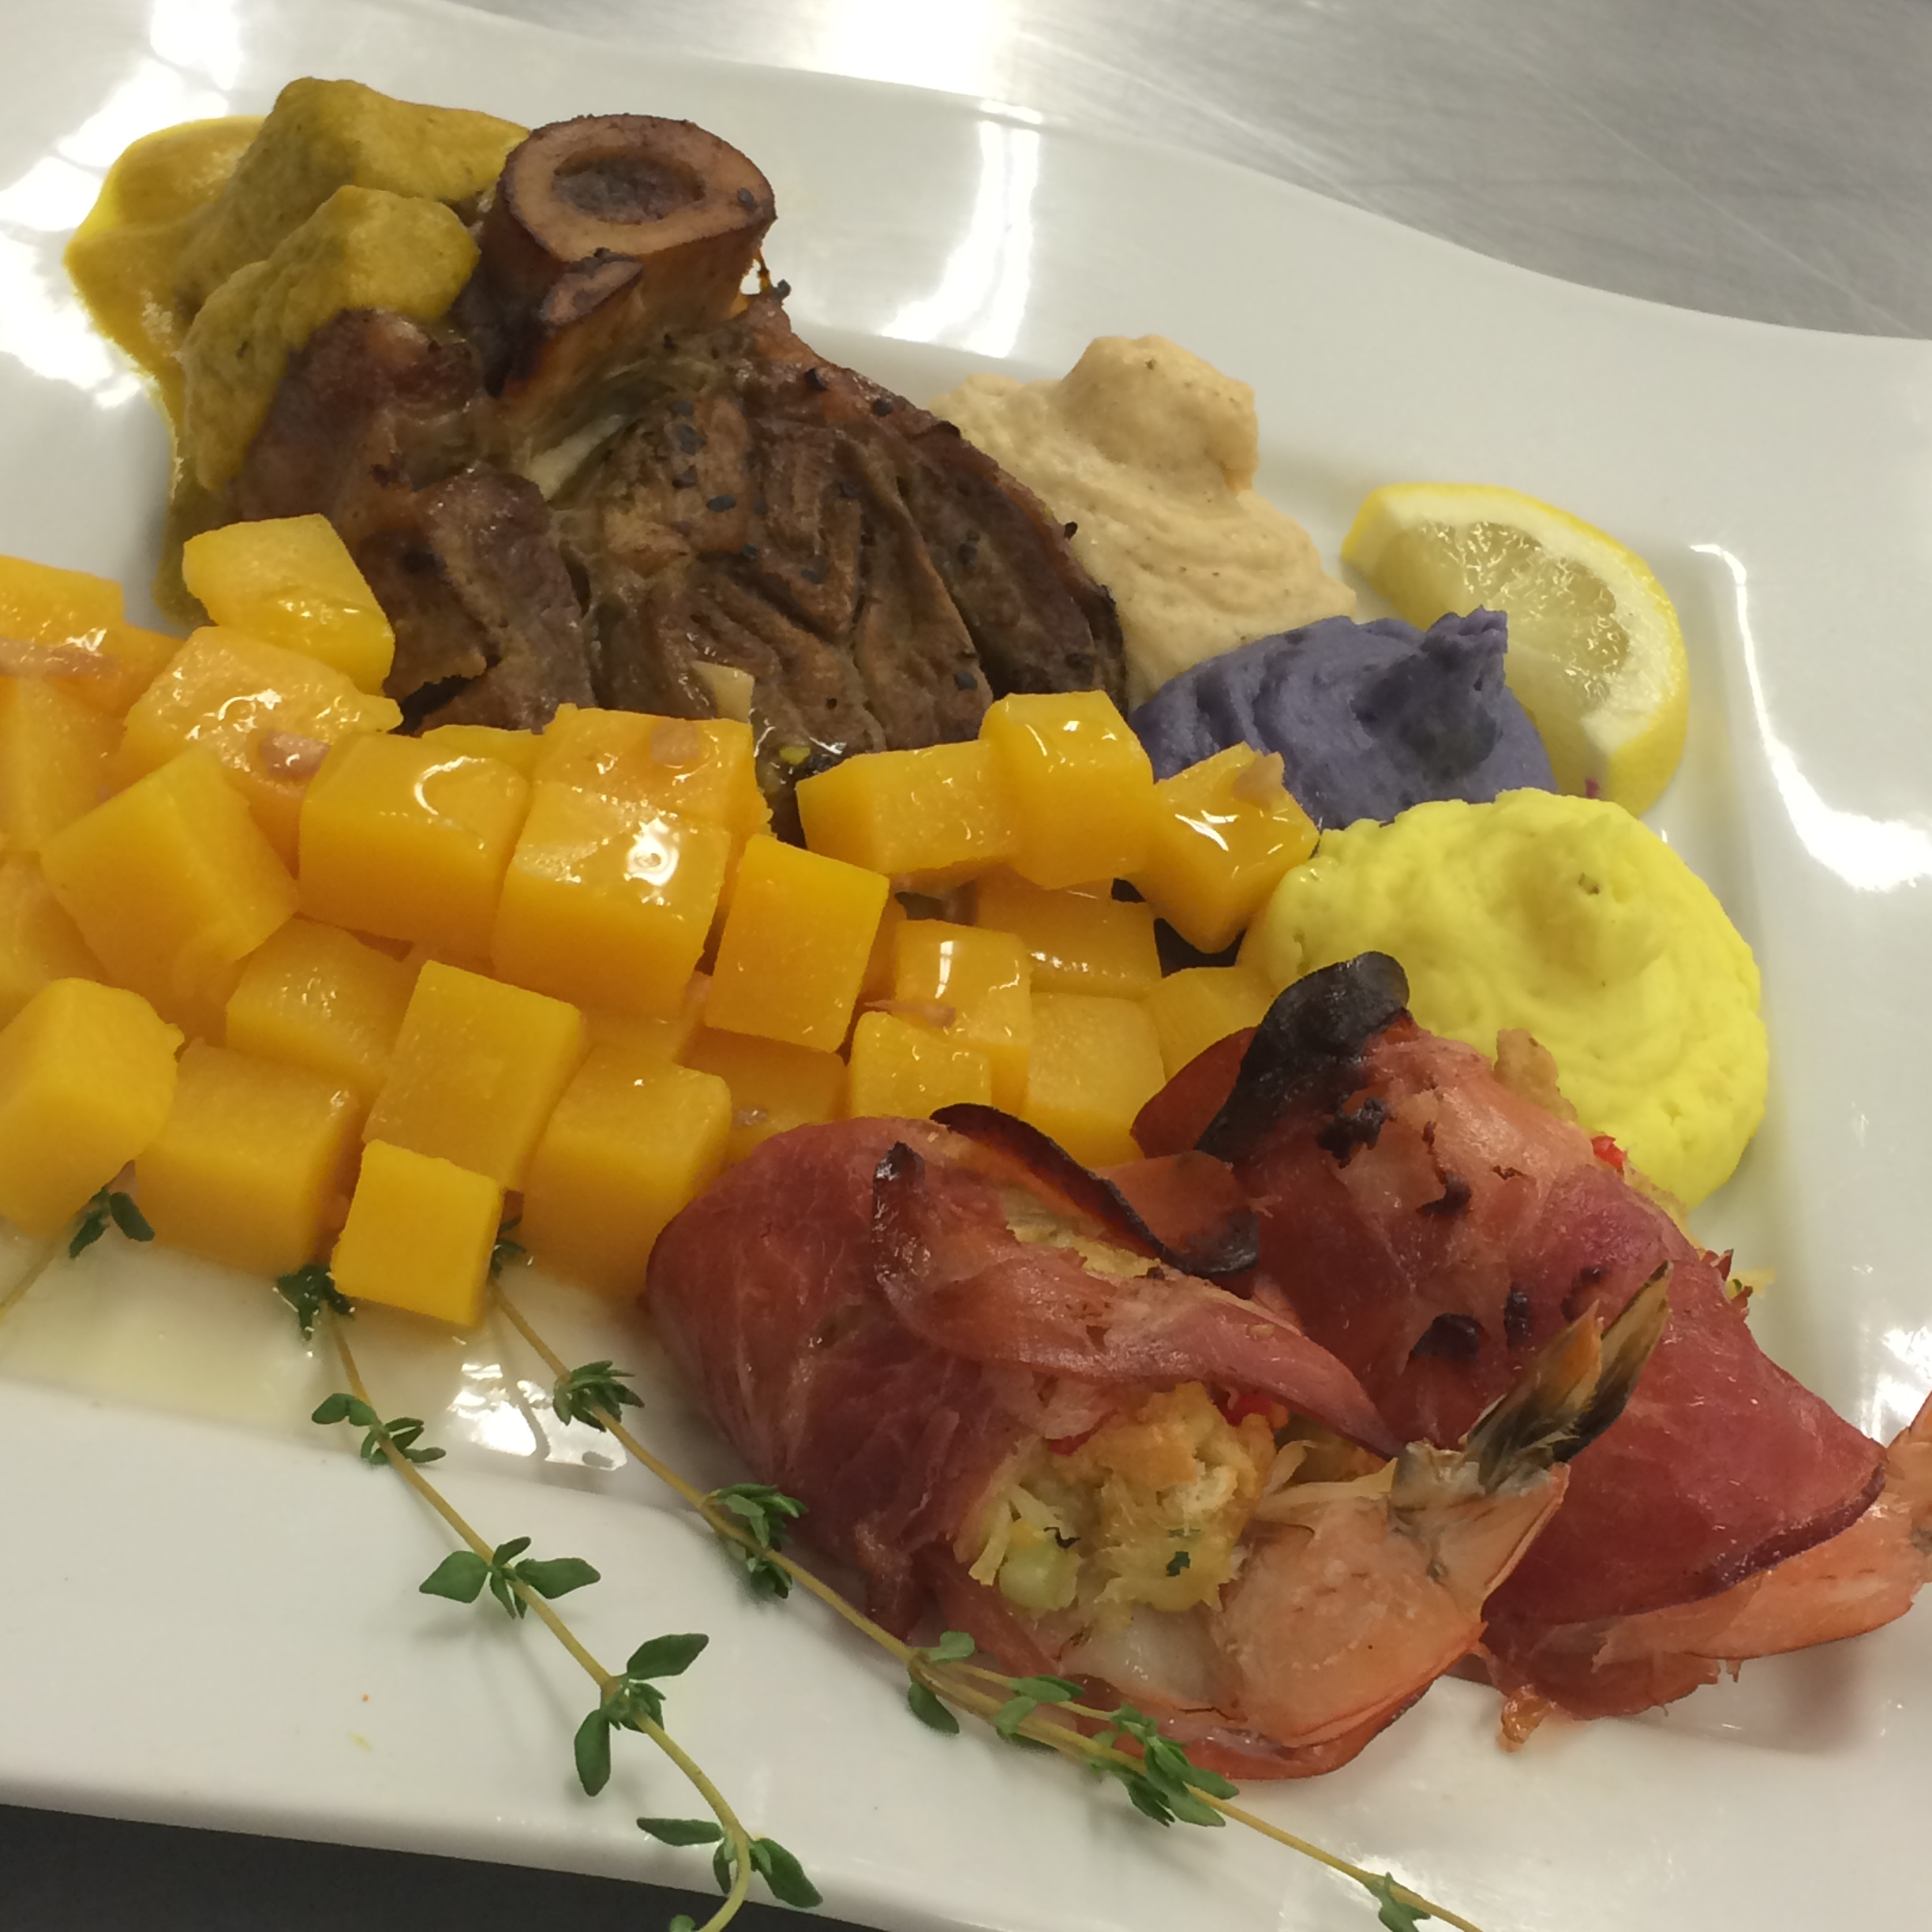 Salt Lake gourmet catering at Lux Catering and Events - Utah's premier caterer Salt Lake Gourmet Catering Happening in our Kitchen Salt Lake Gourmet Catering Happening in our Kitchen 2015 05 28 15